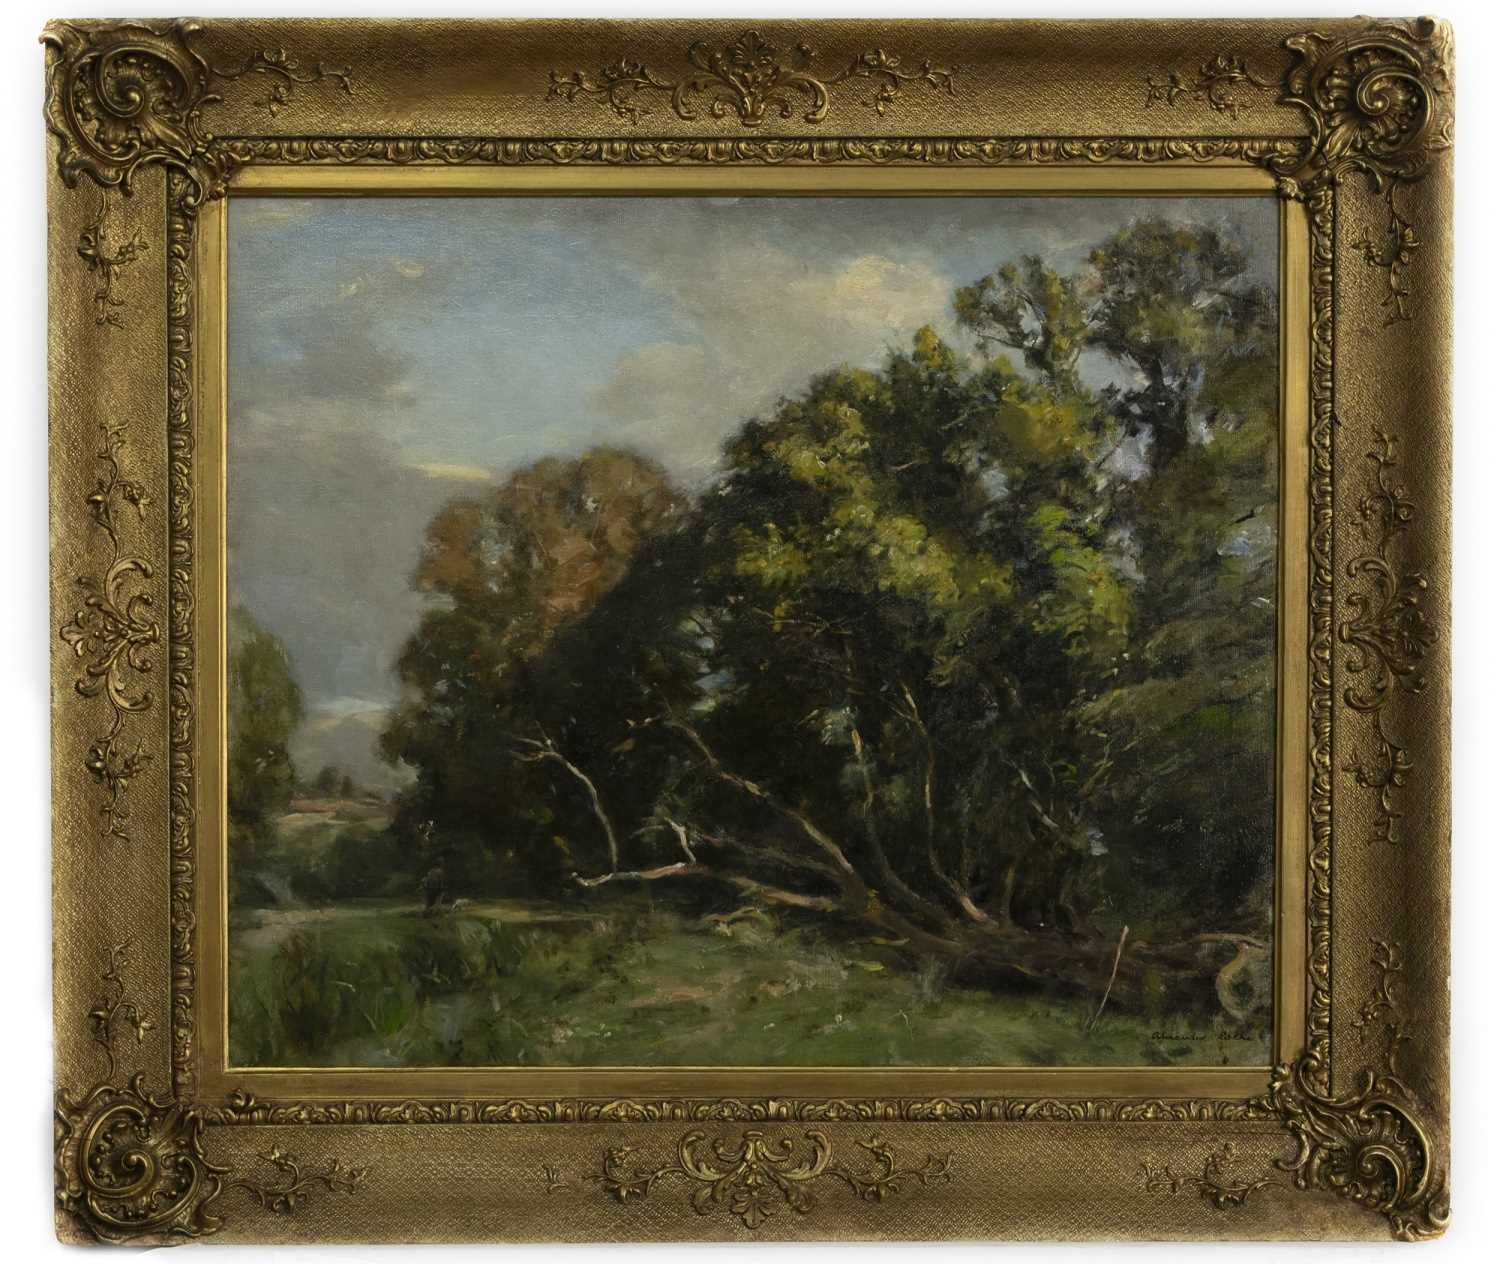 Lot 2037 - THE WALK TO THE RIVER, AN OIL BY ALEXANDER IGNATIUS ROCHE